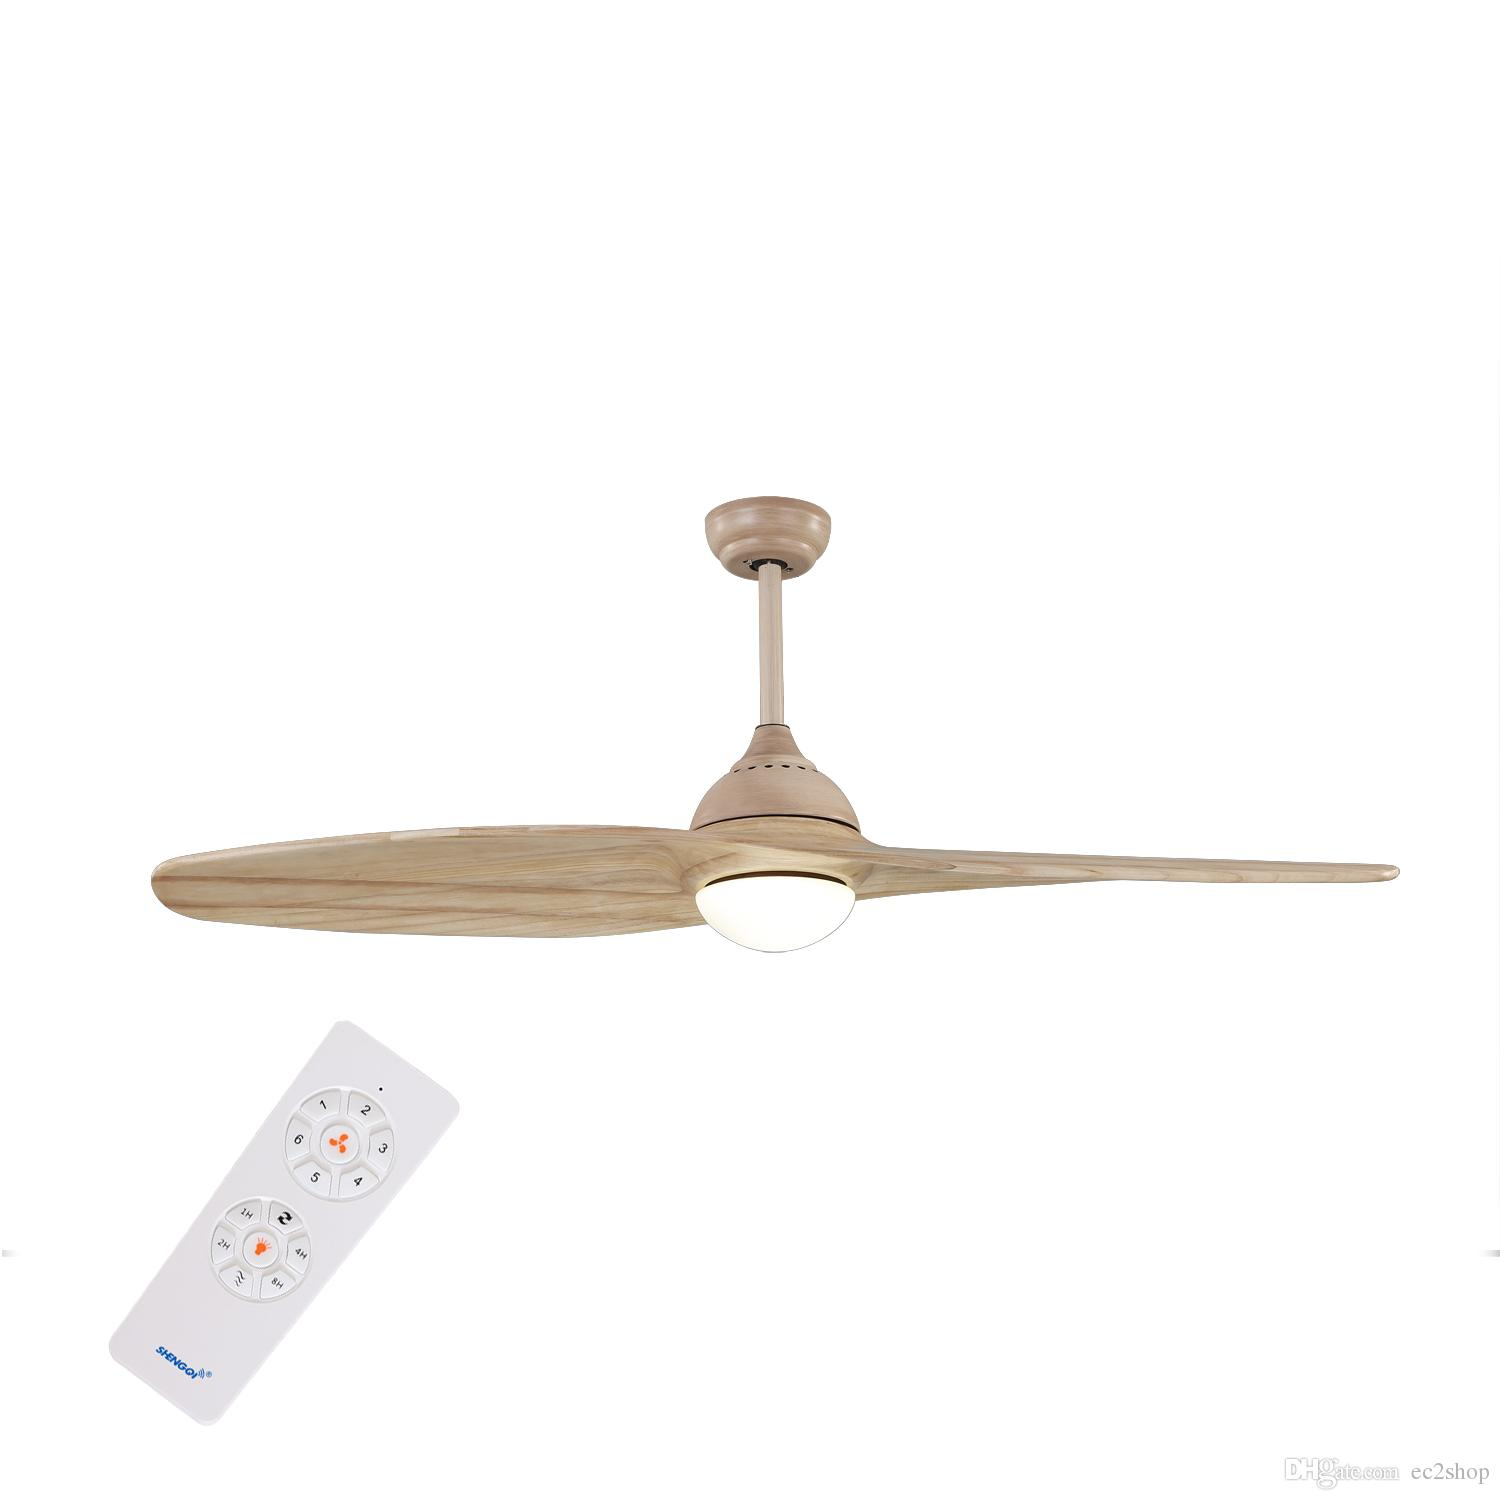 2018 2 Blade Ceiling Fan With Light And Remote Control Ac Dc 54 Inch For Bedroom Living Room On From Ec2 12 07 Dhgate Com